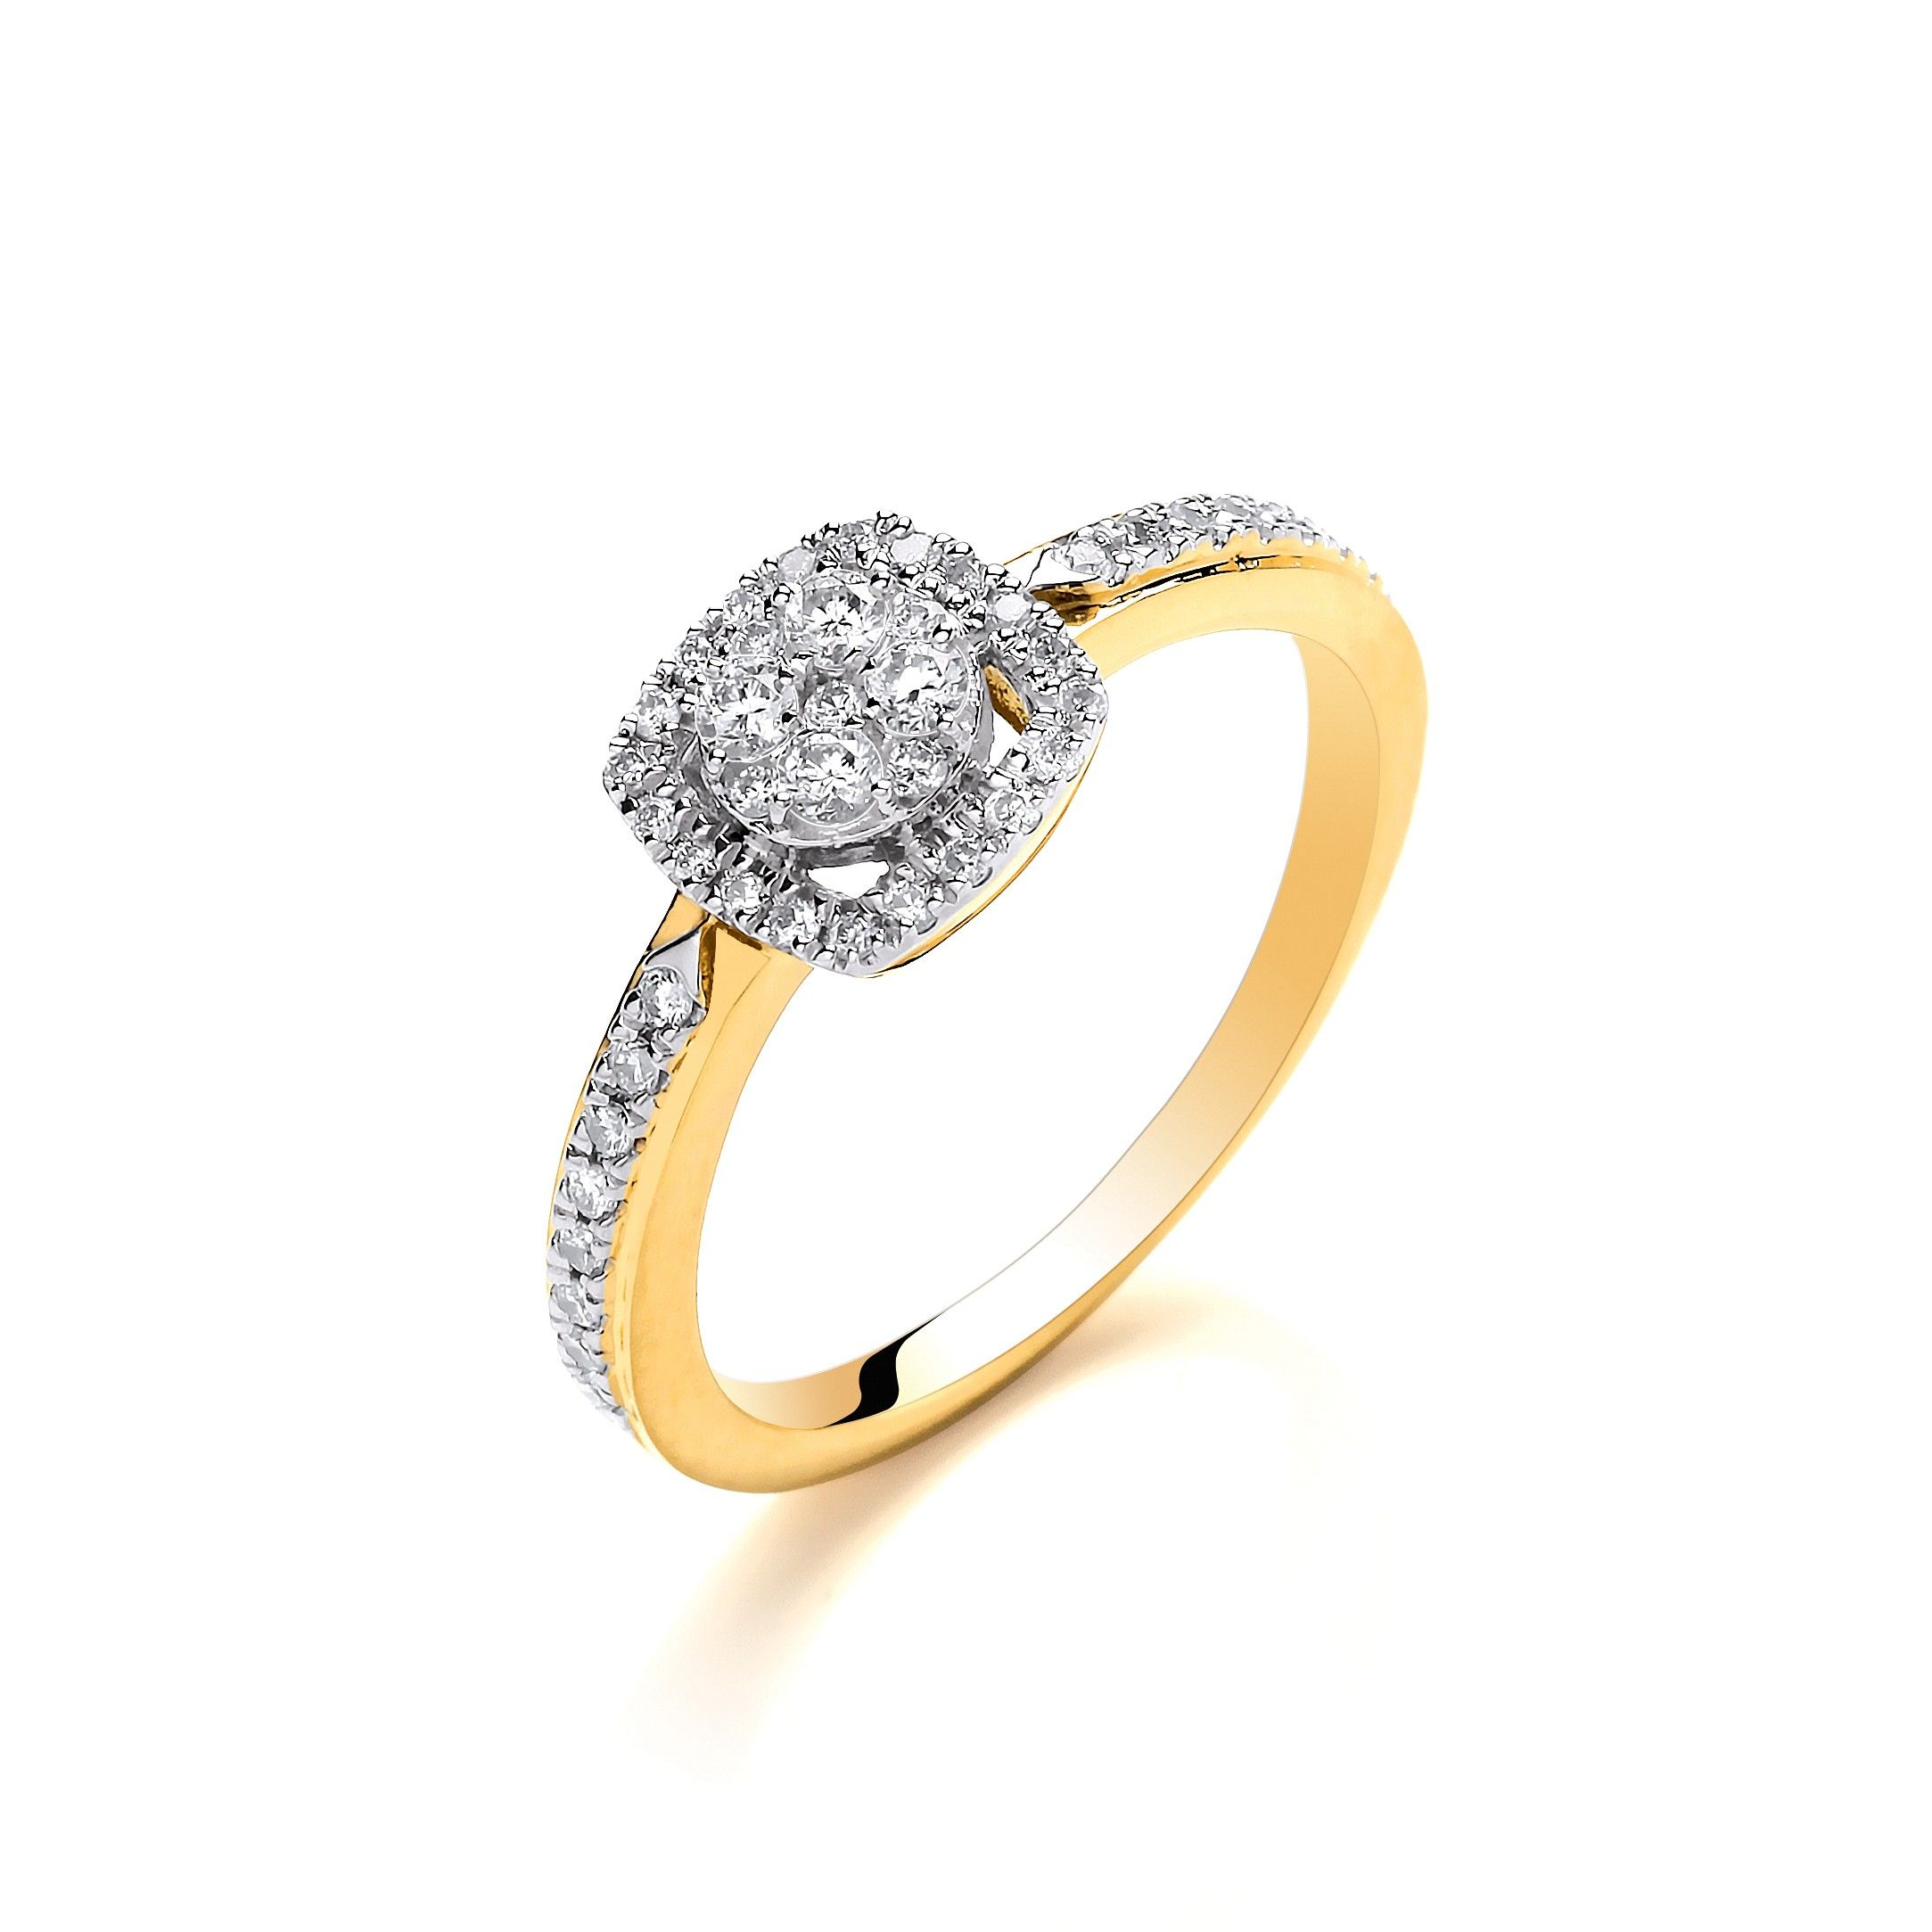 18ct Yellow Gold Square Halo Style 0.32ct Diamond Ring